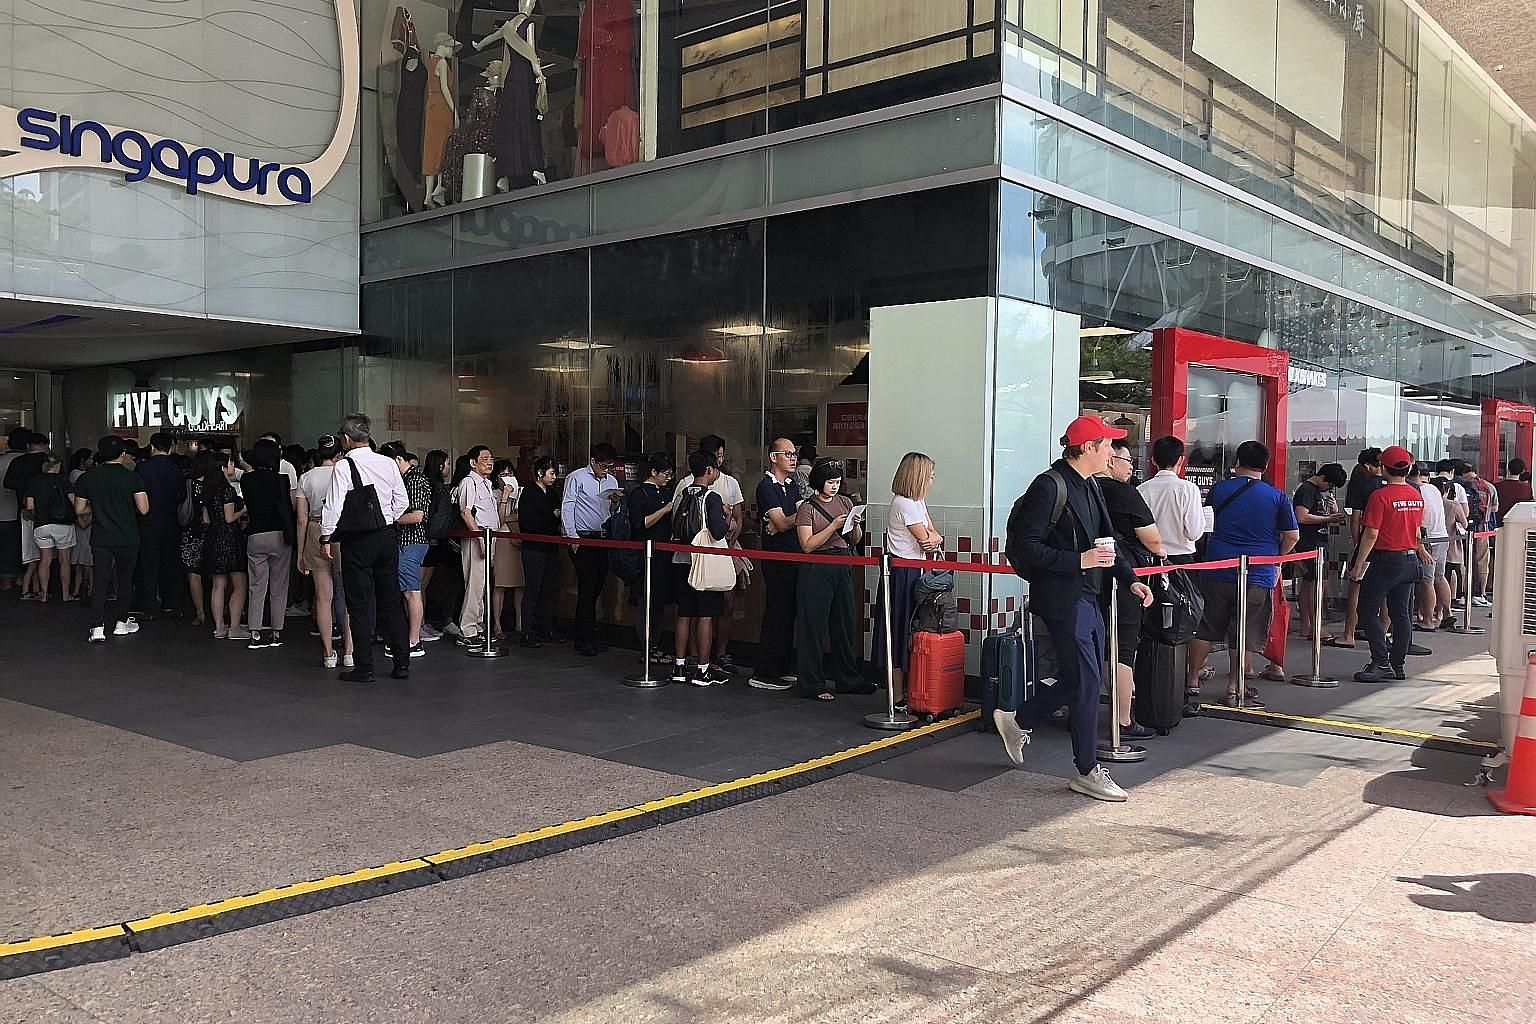 Five Guys Singapore (left) had about 100 people in line prior to the store's opening at 11am. The brand prides itself on its hand-cut fries cooked in peanut oil, as well as burger patties with an 80-20 lean meat-to-fat ratio.